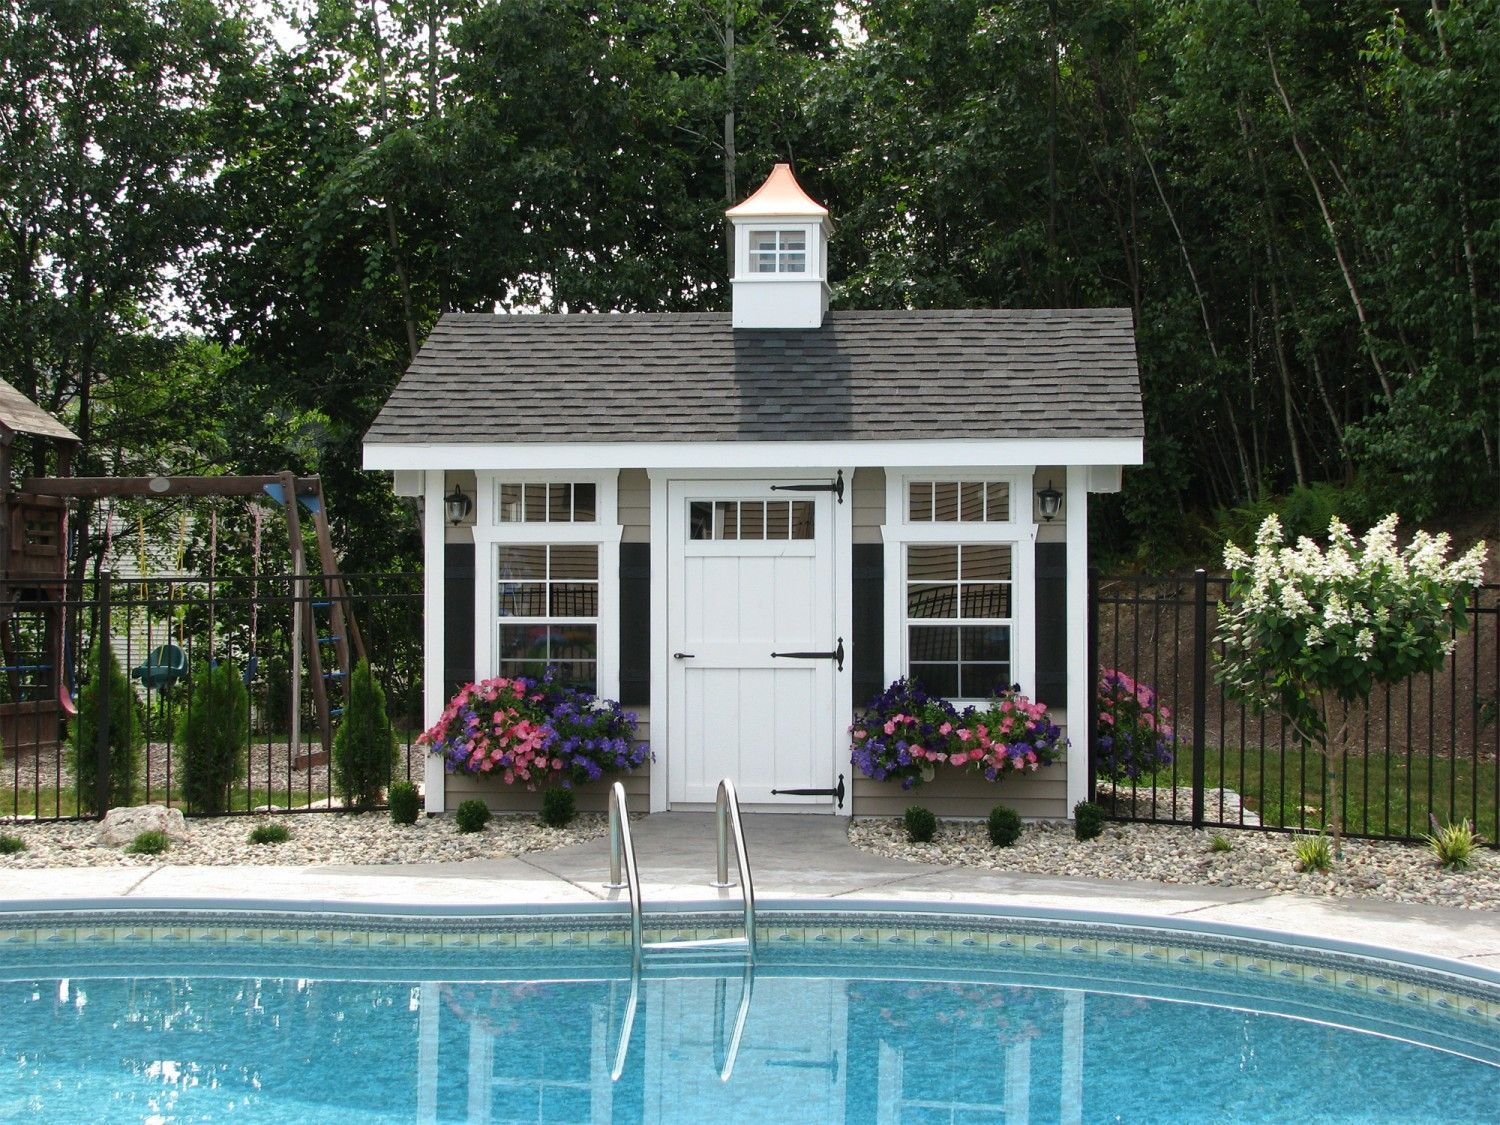 covers shed custom filter equipment garden sheds pump pool angled